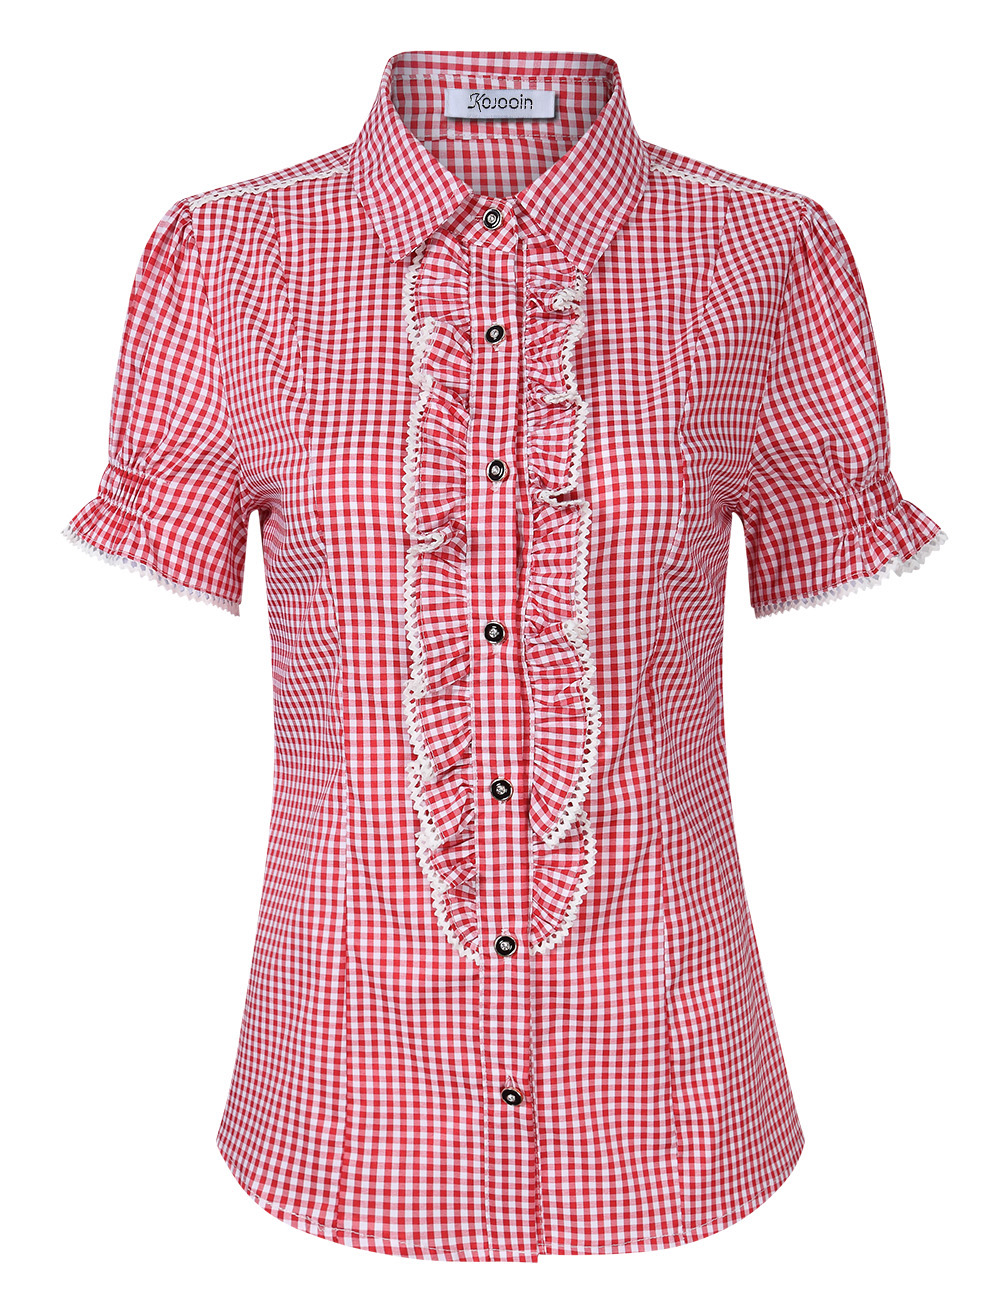 [EU Direct] Women's Beer Festival Plaid Pleated Short Sleeve Casual Shirt for Oktoberfest